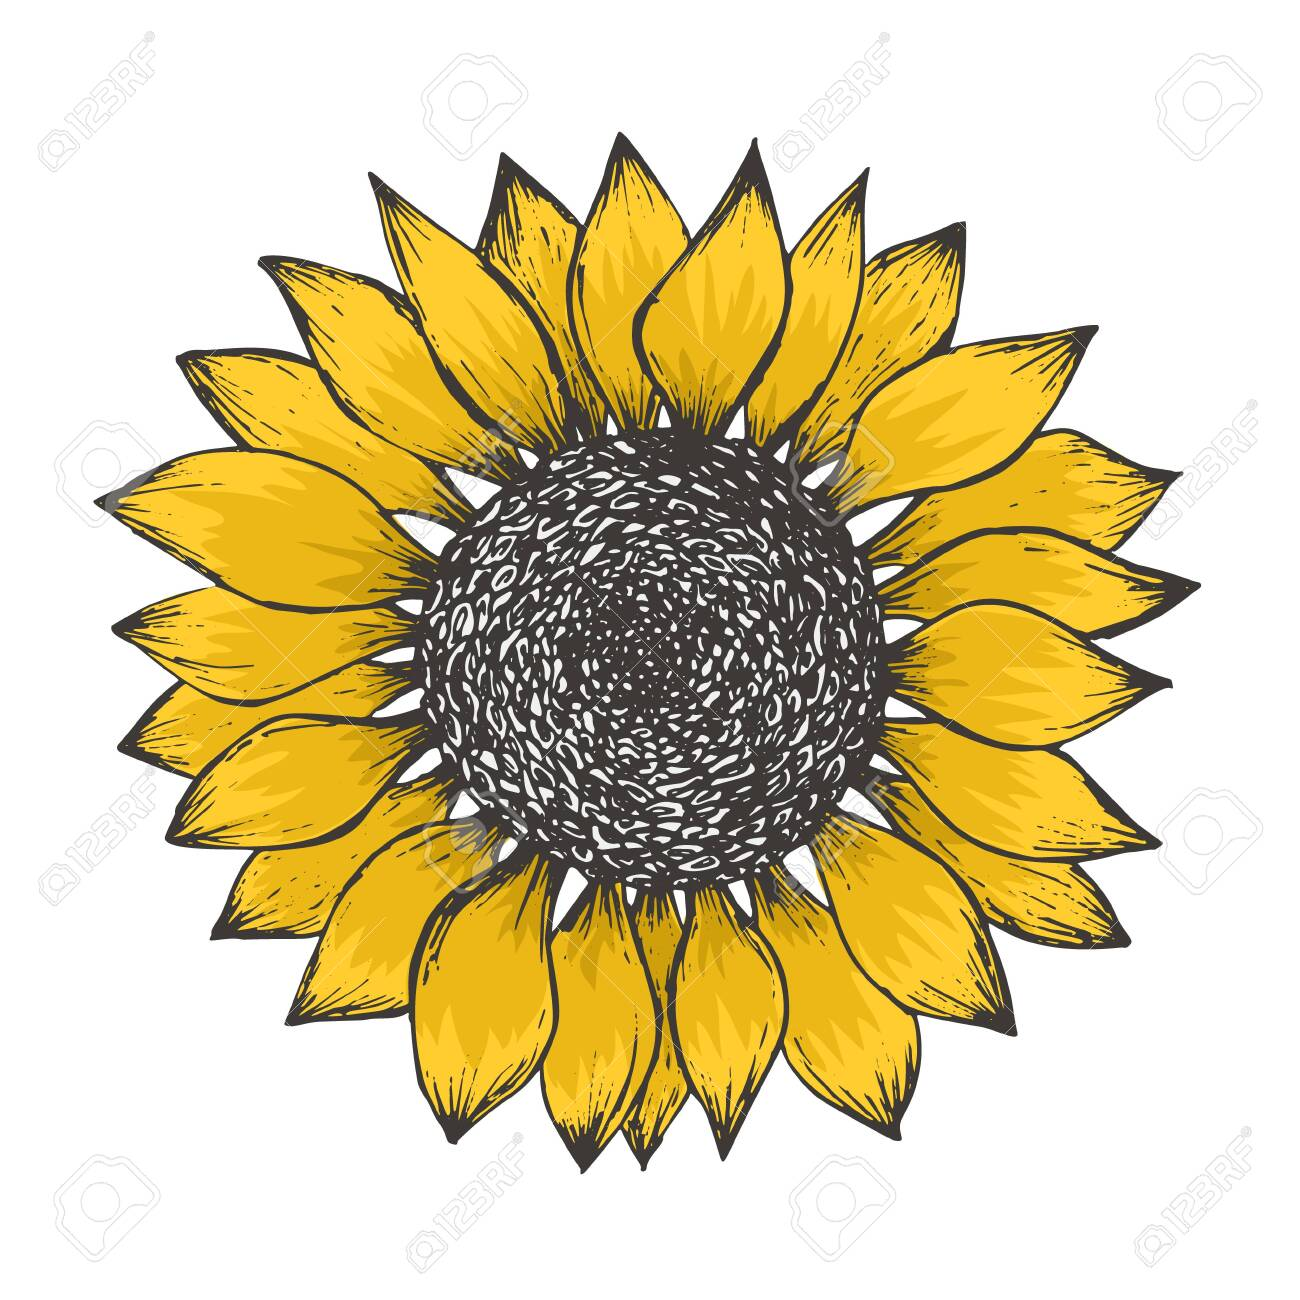 Bright sketch of colorful yellow sunflower blossom with black seeds. Hand drawn color illustration of sun flower isolated on white background for botanical pattern design, greeting card decoration - 121465268